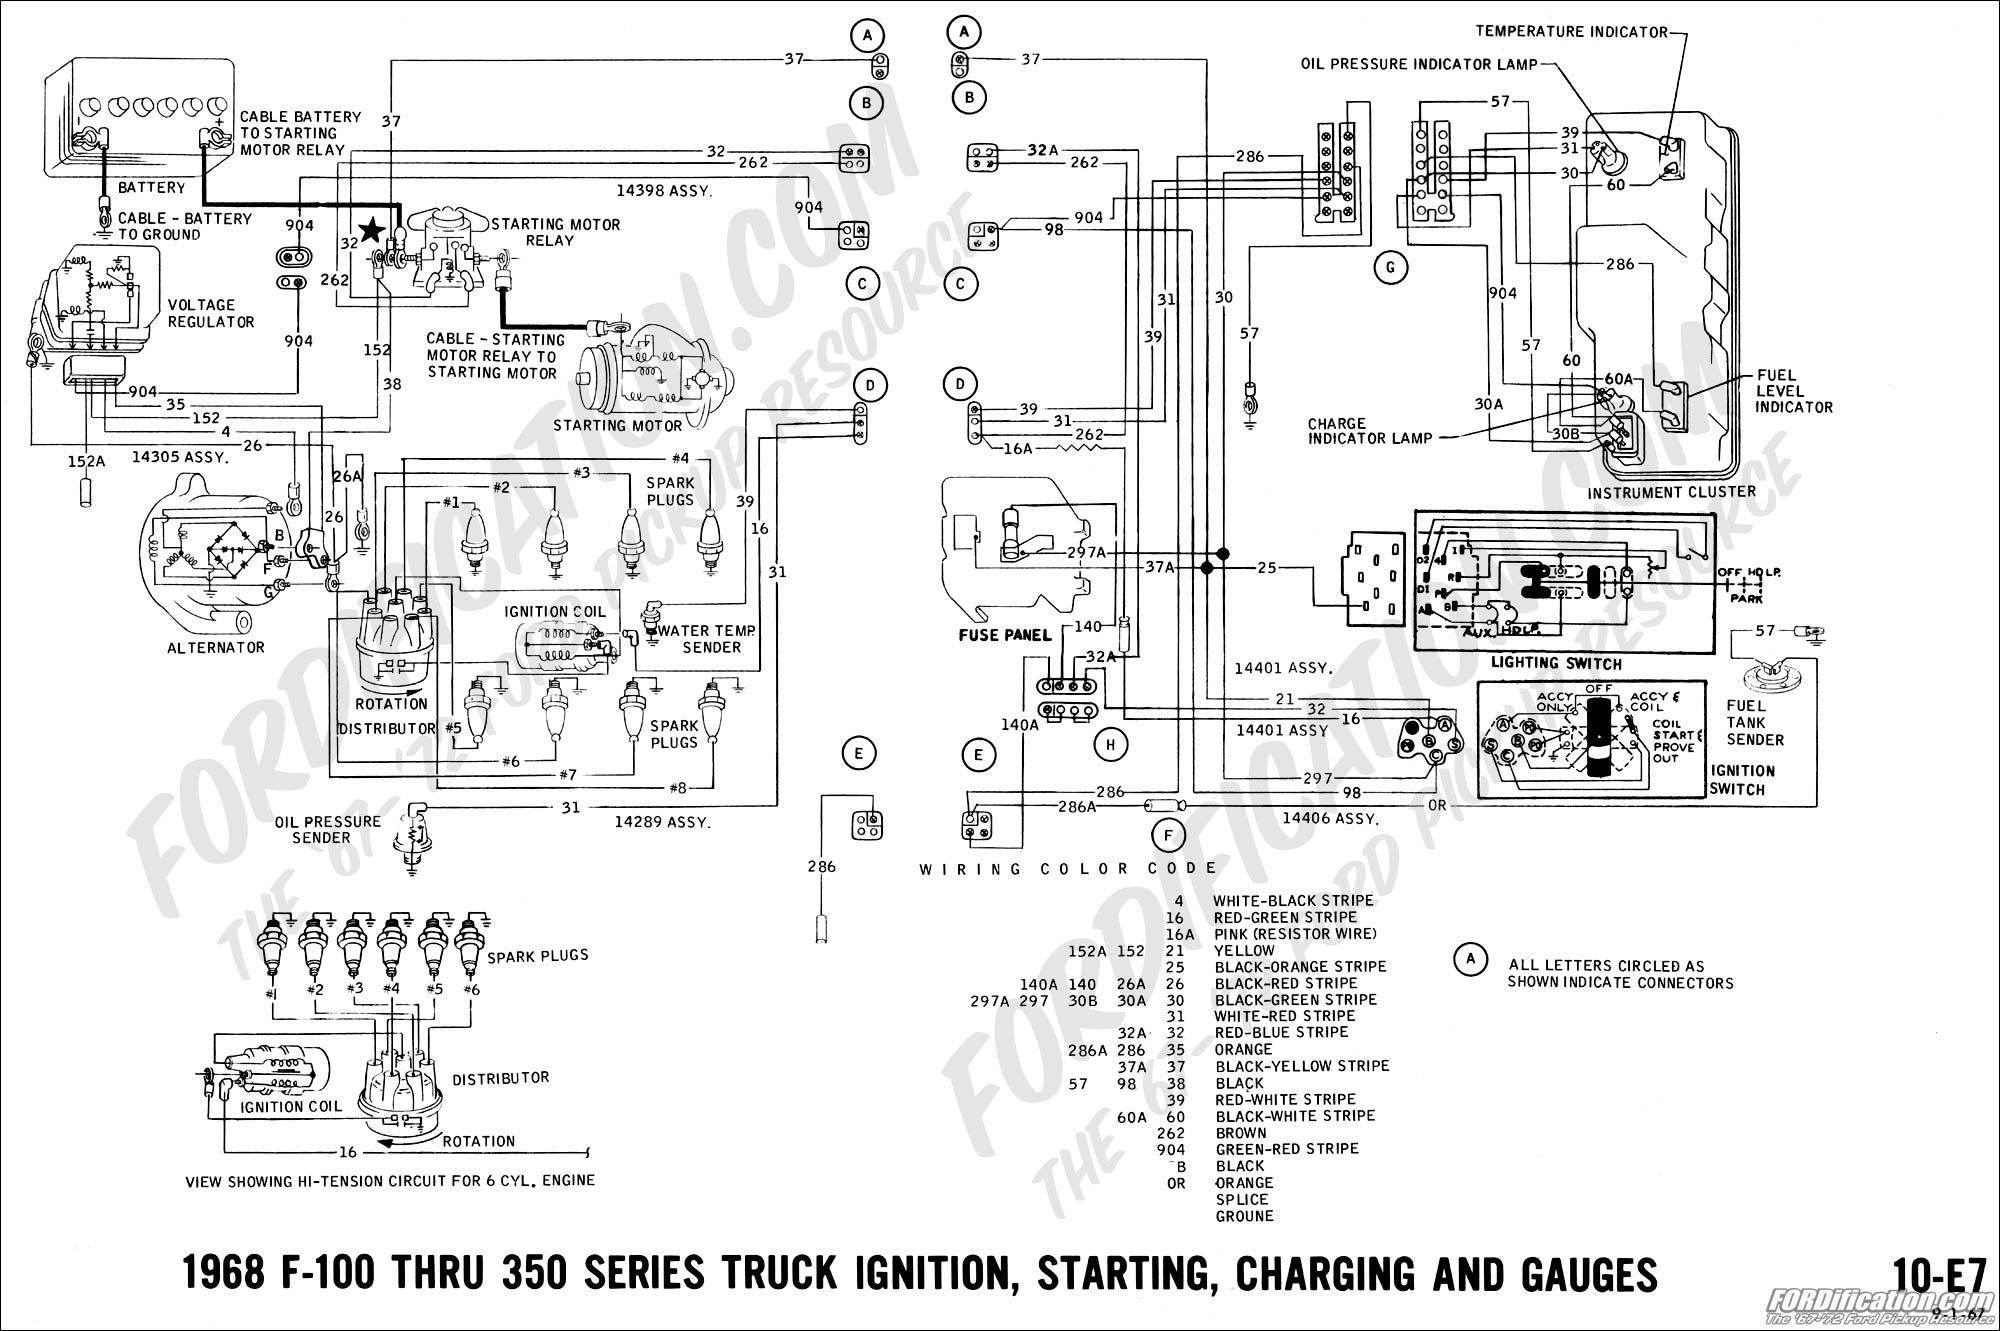 68 09 ford truck technical drawings and schematics section h wiring 1999 F150 Radio Wiring Diagram at soozxer.org